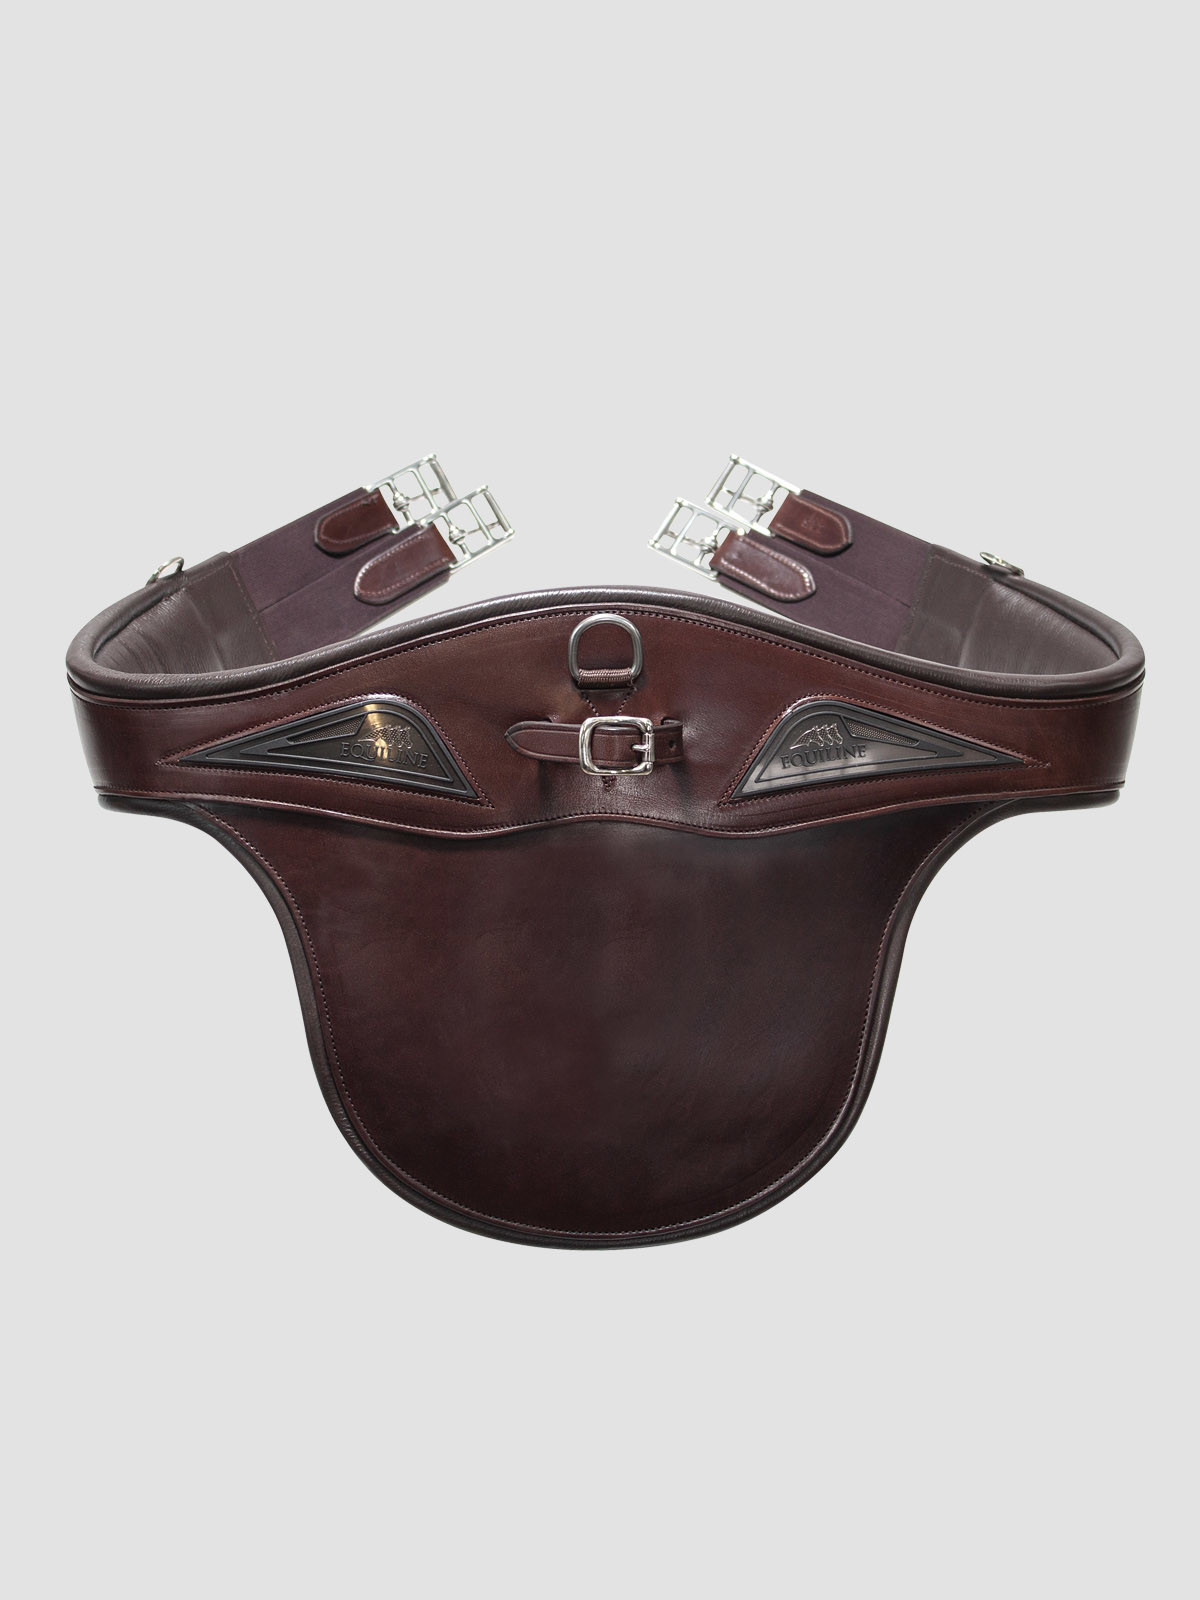 Equiline Belly guard girth